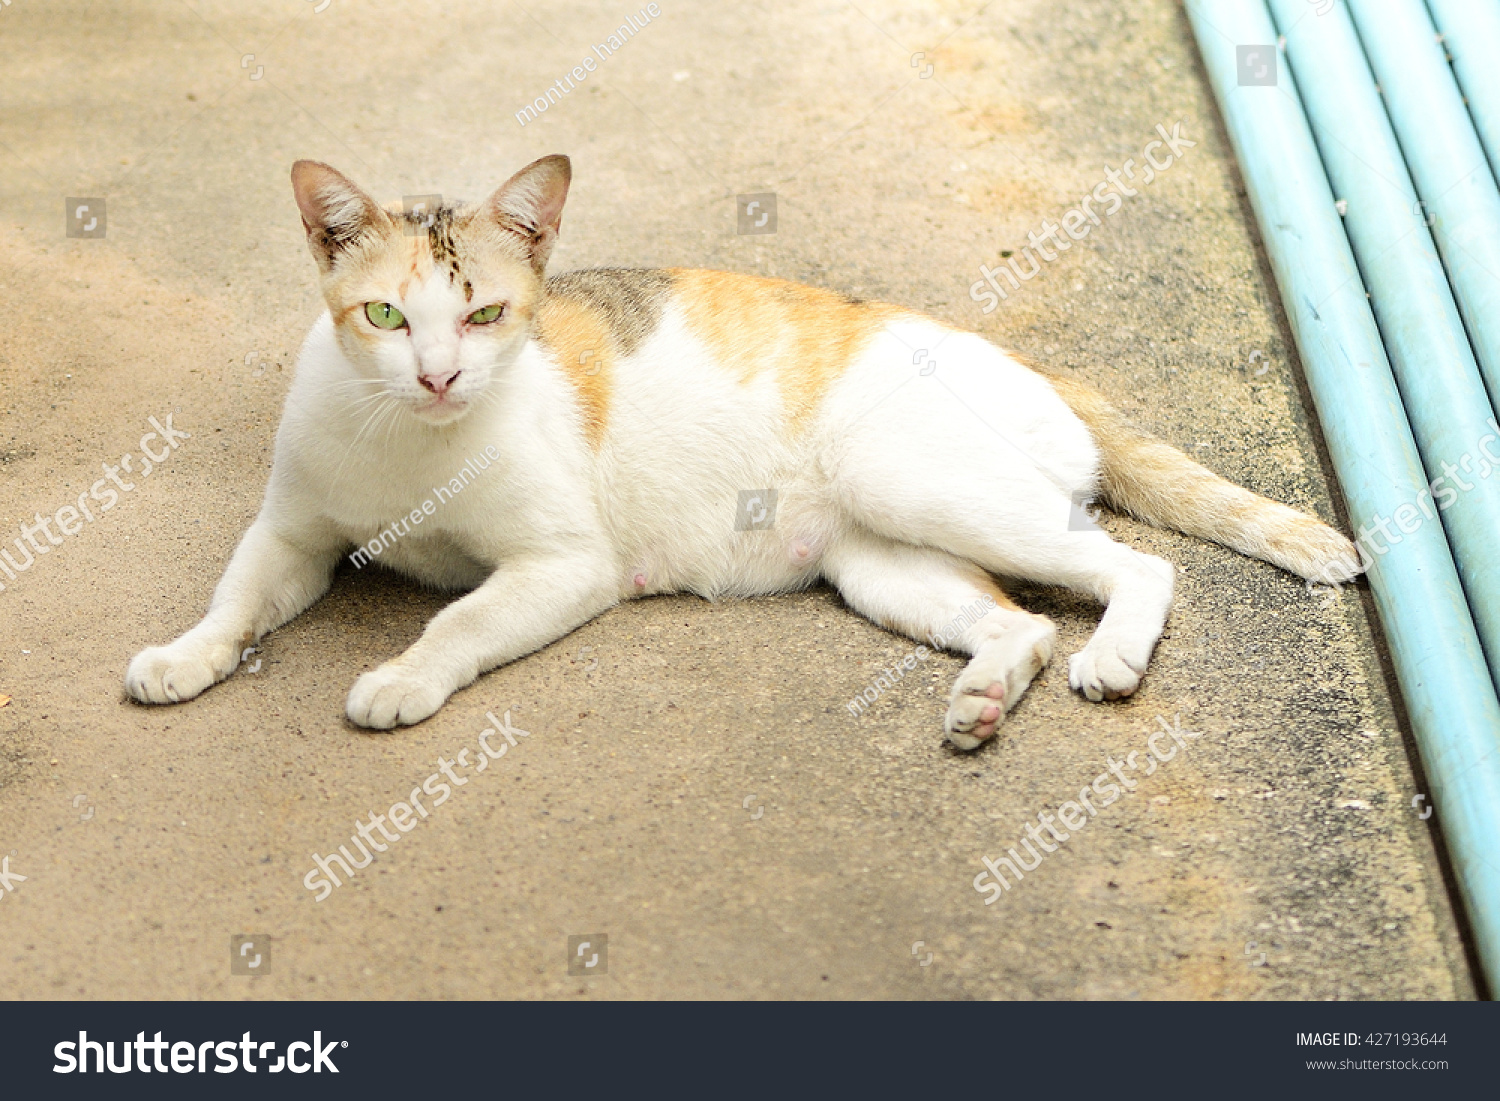 White Color Cat Thai Nature Local On The Street Bangkok Thailand